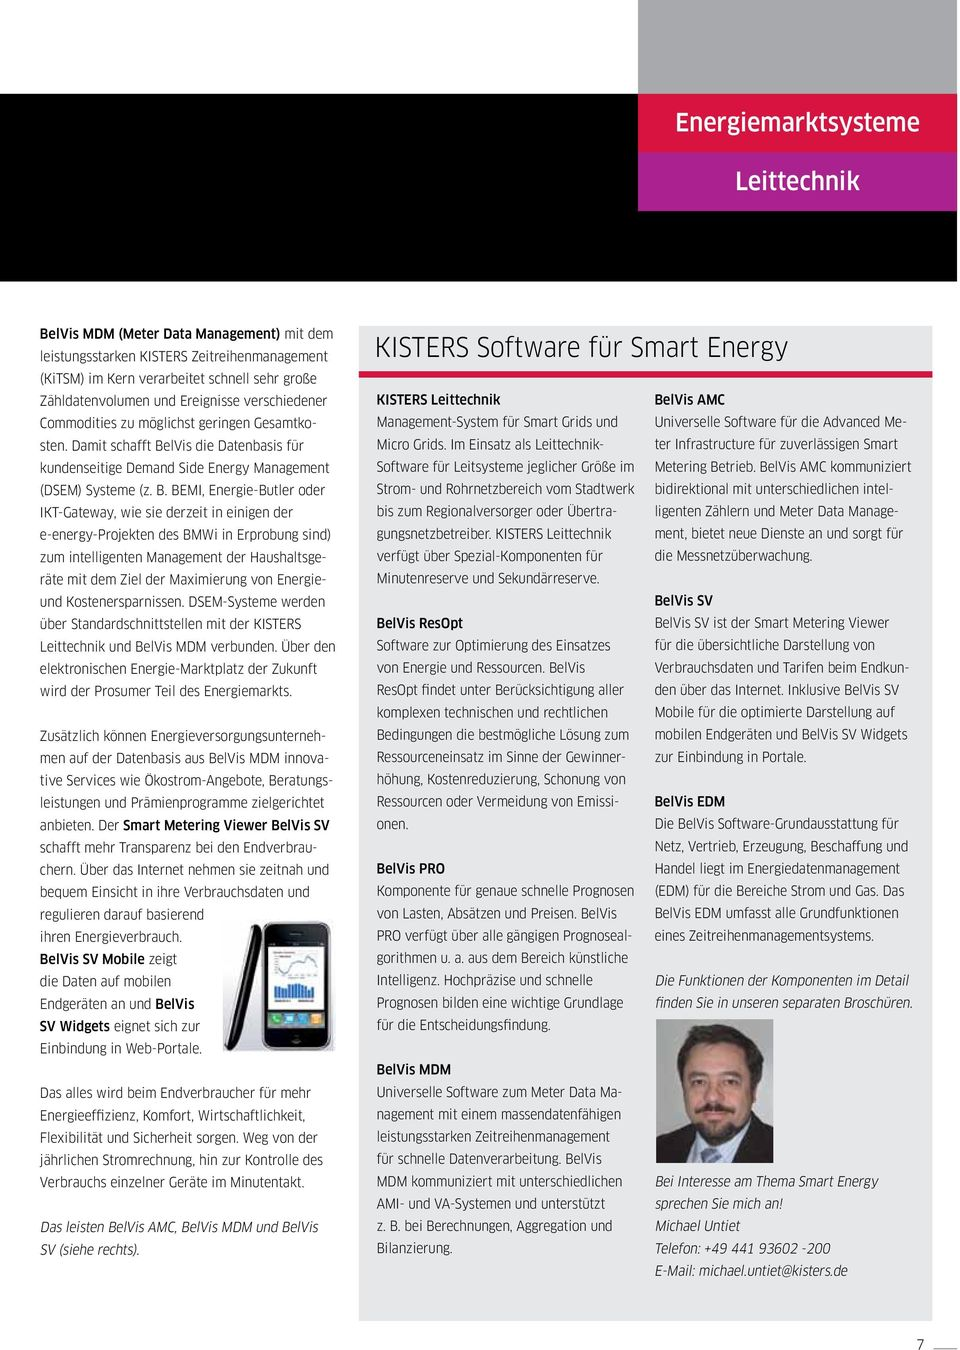 lVis die Datenbasis für kundenseitige Demand Side Energy Management (DSEM) Systeme (z. B.